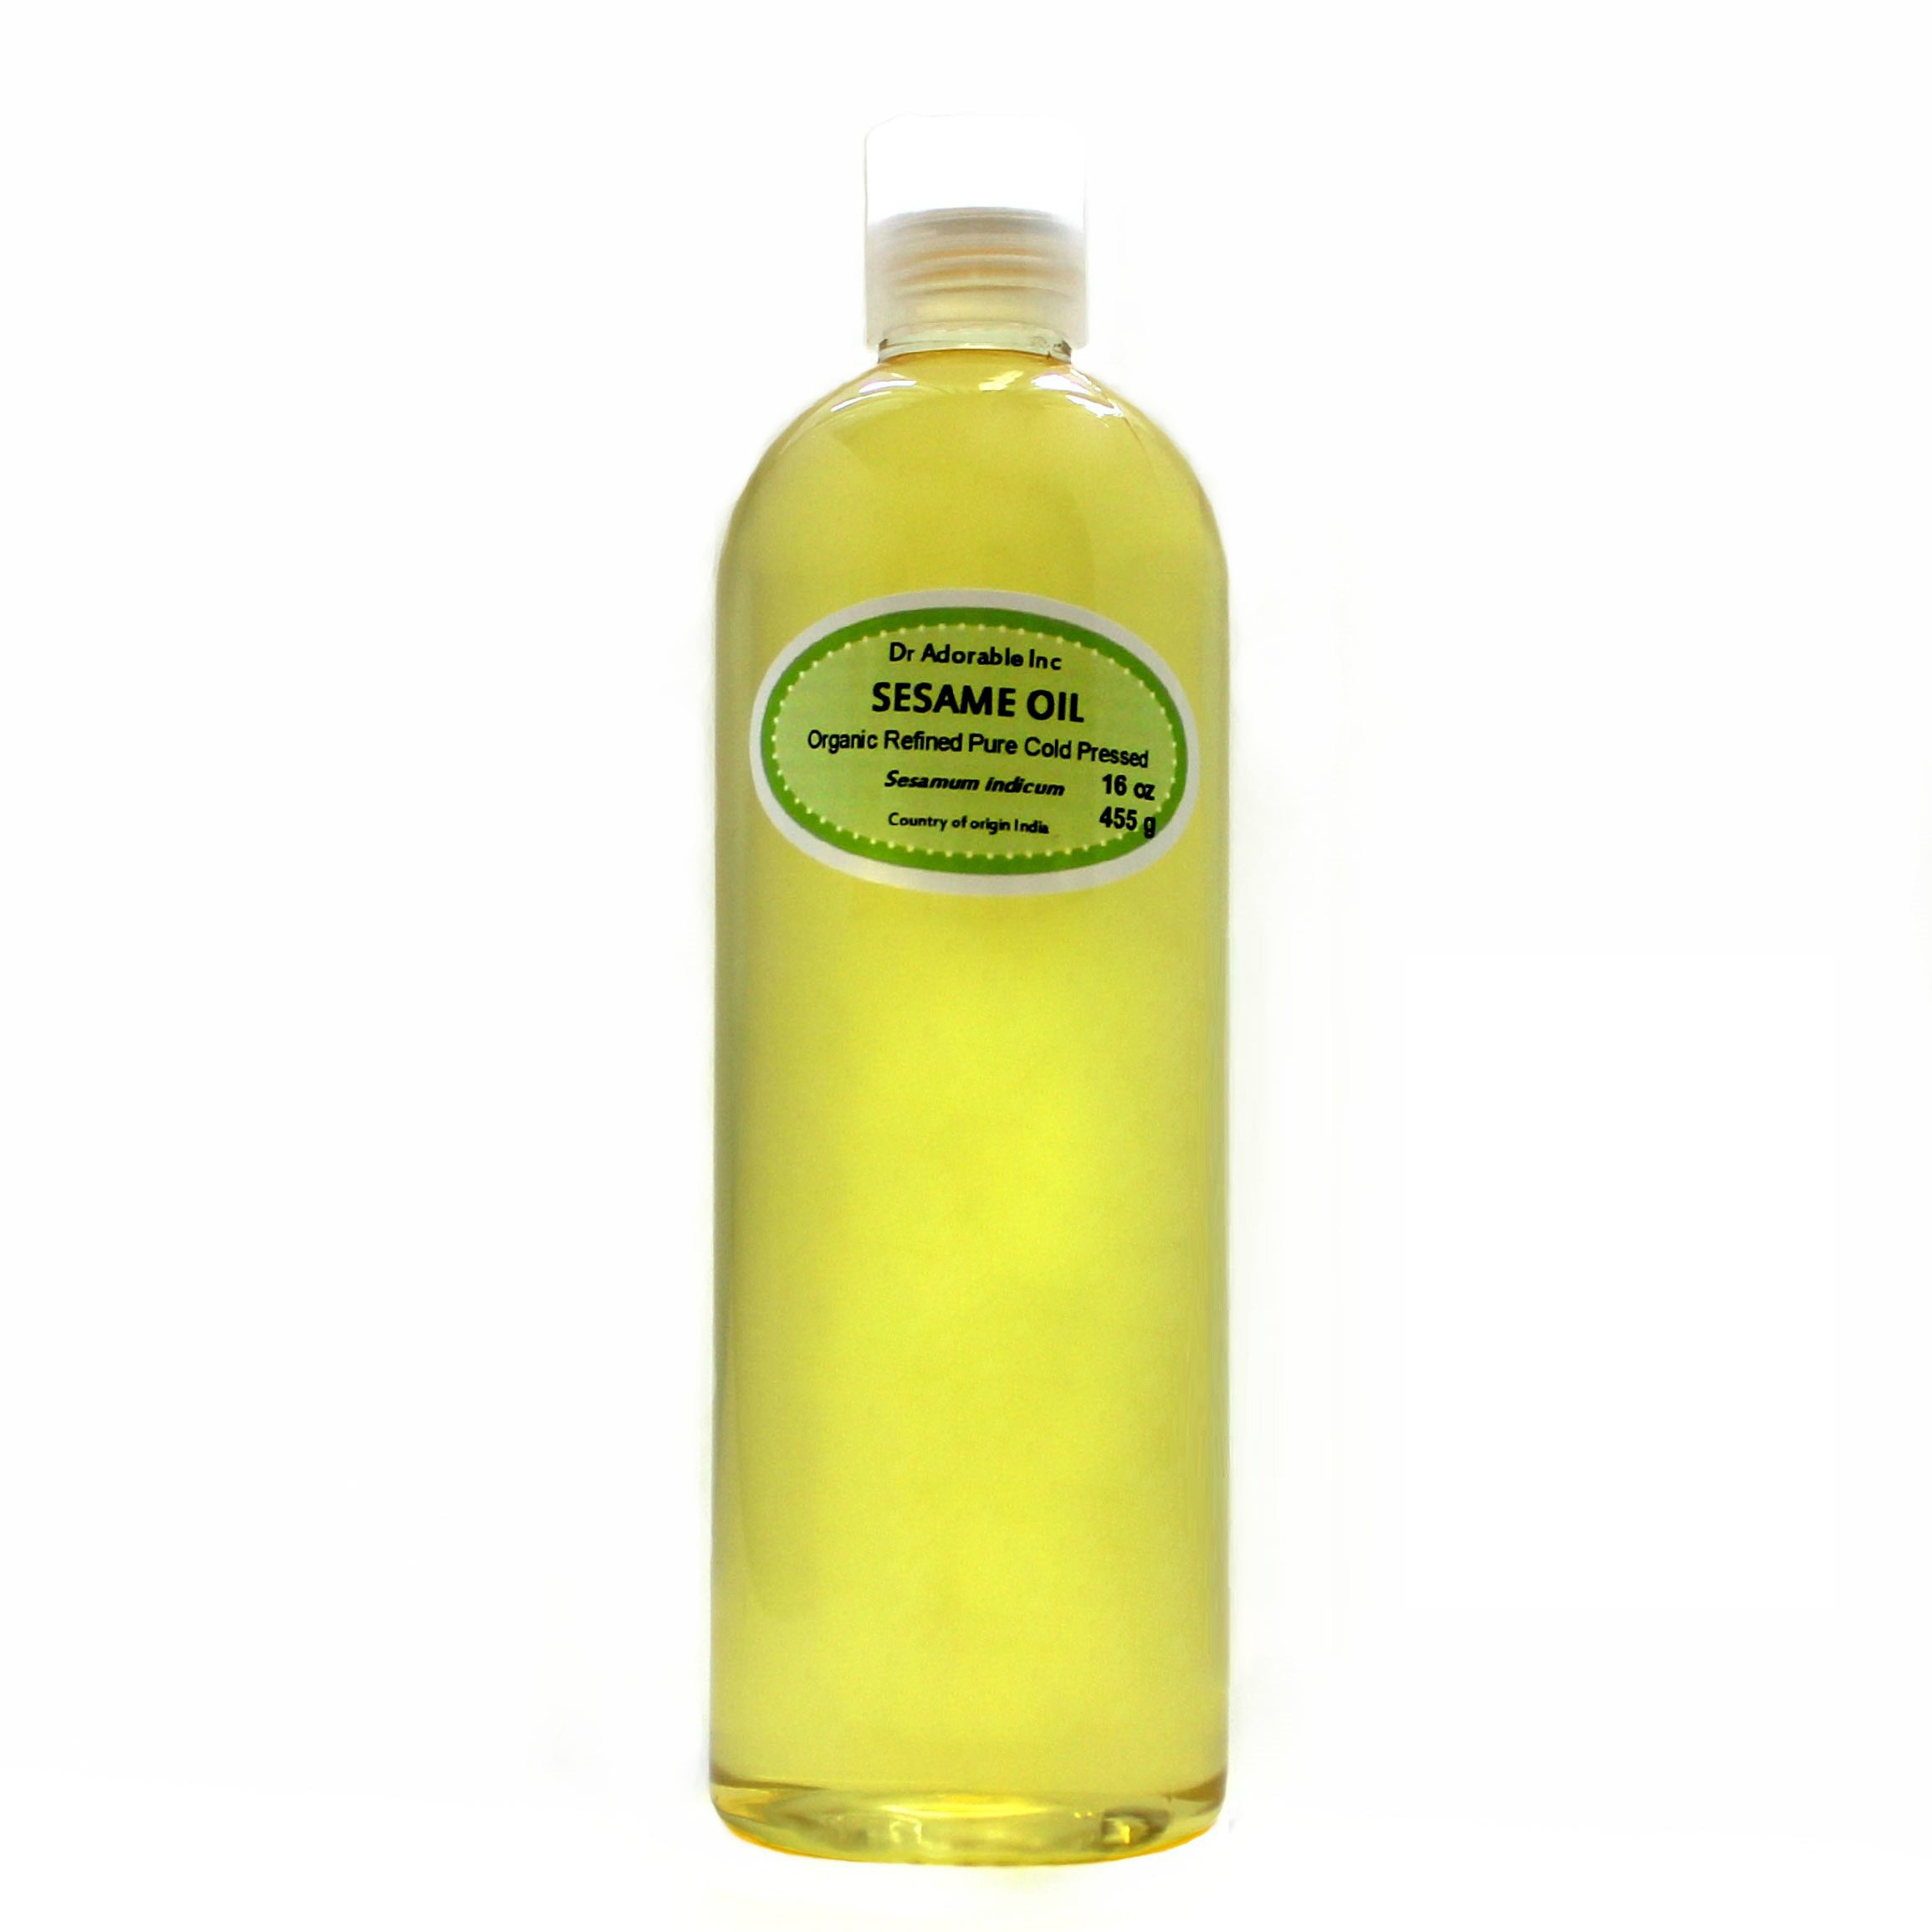 Sesame OIL Refined Cold Pressed Organic 16 Oz / 1 Pint by Dr Adorable